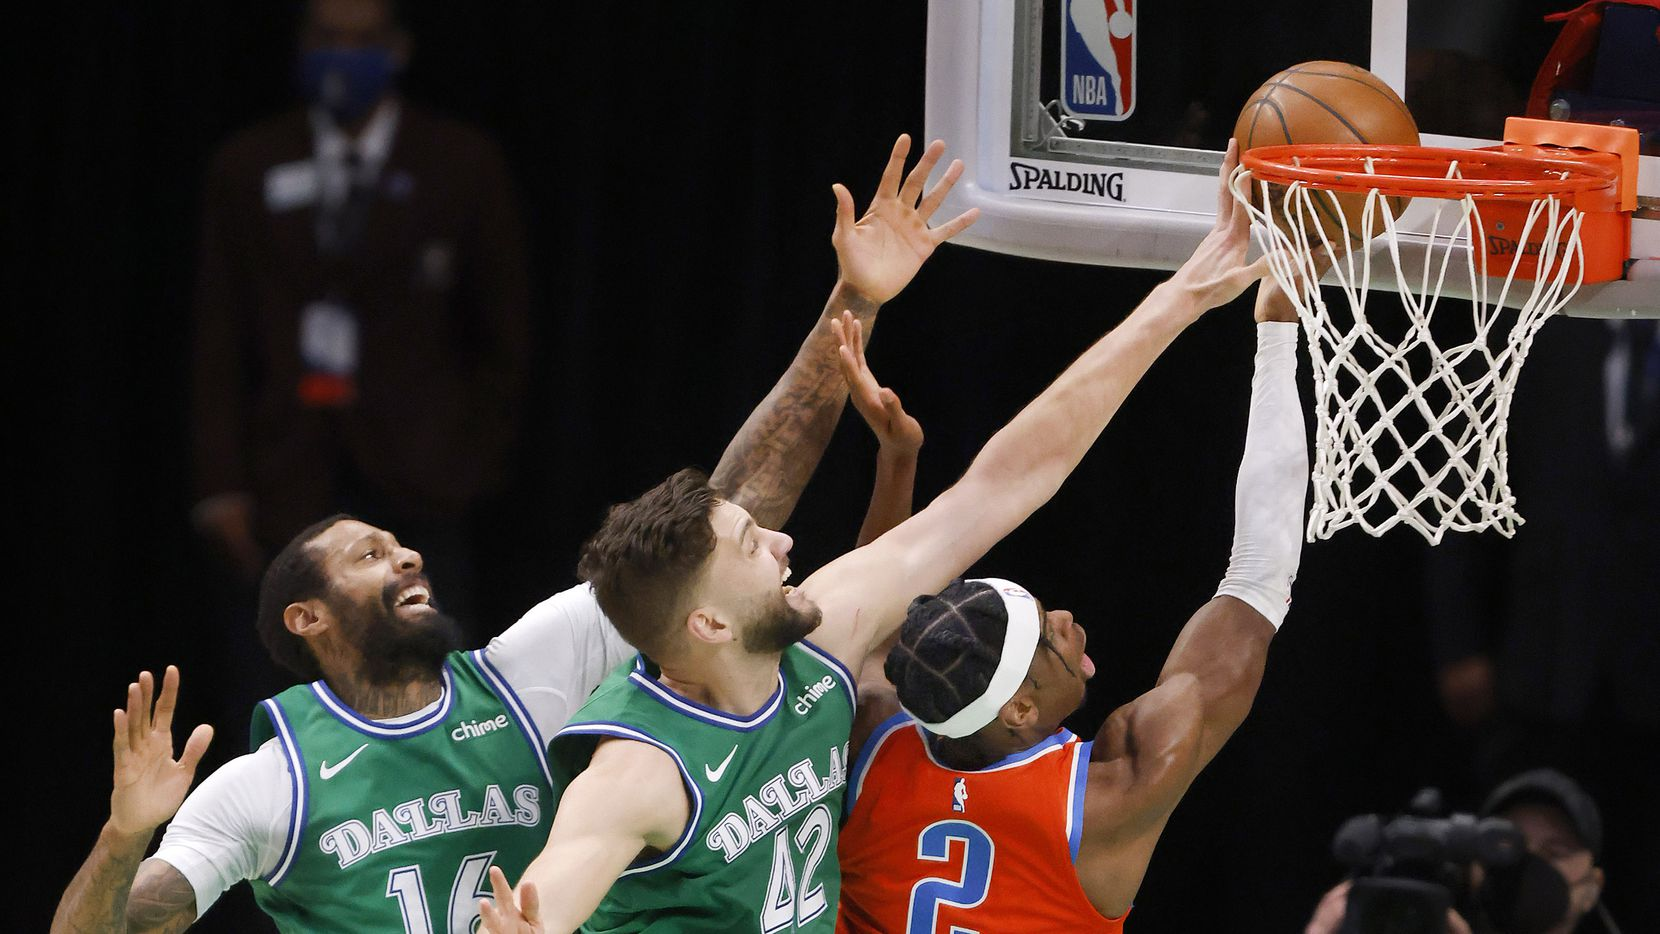 Dallas Mavericks forward Maxi Kleber (42) was called for the foul as he attempts to block Oklahoma City Thunder guard Shai Gilgeous-Alexander's (2) layup during the first quarter at the American Airlines Center in Dallas, Wednesday, March 3, 2021. Assisting on the play is Dallas Mavericks forward James Johnson (16).